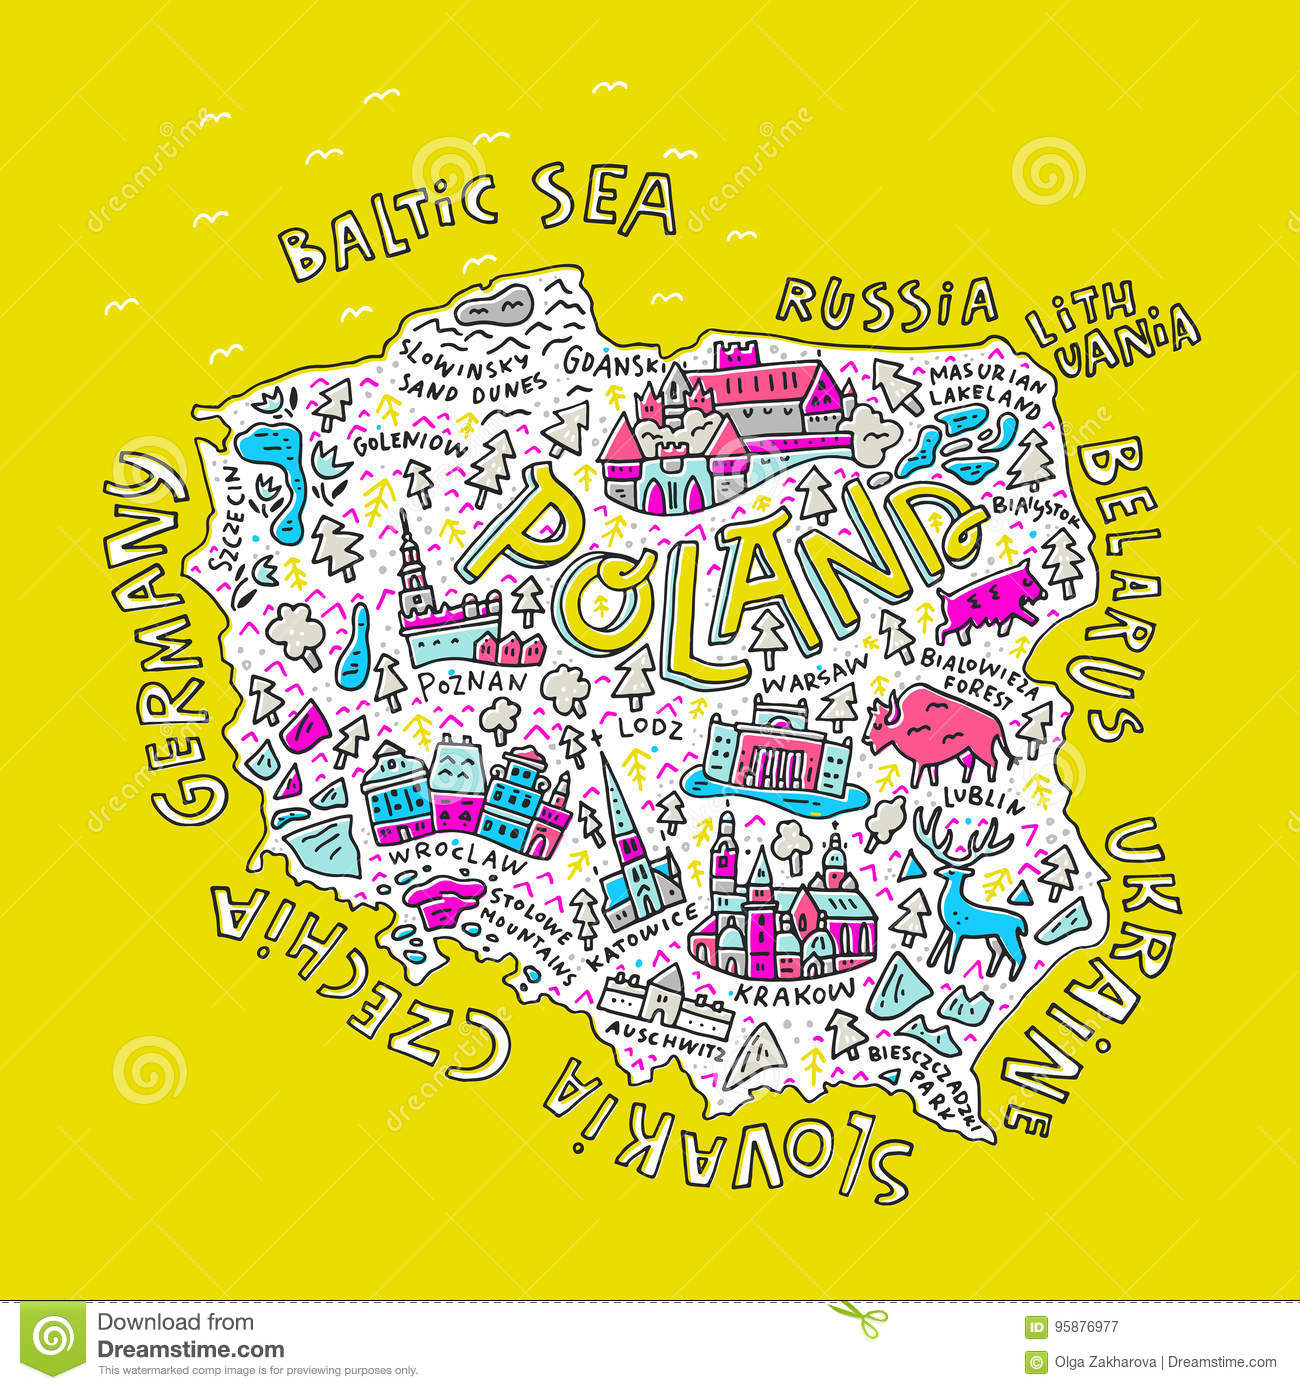 All map symbols images symbol and sign ideas map of poland stock vector image of cartoon geographic 95876977 map of poland buycottarizona buycottarizona